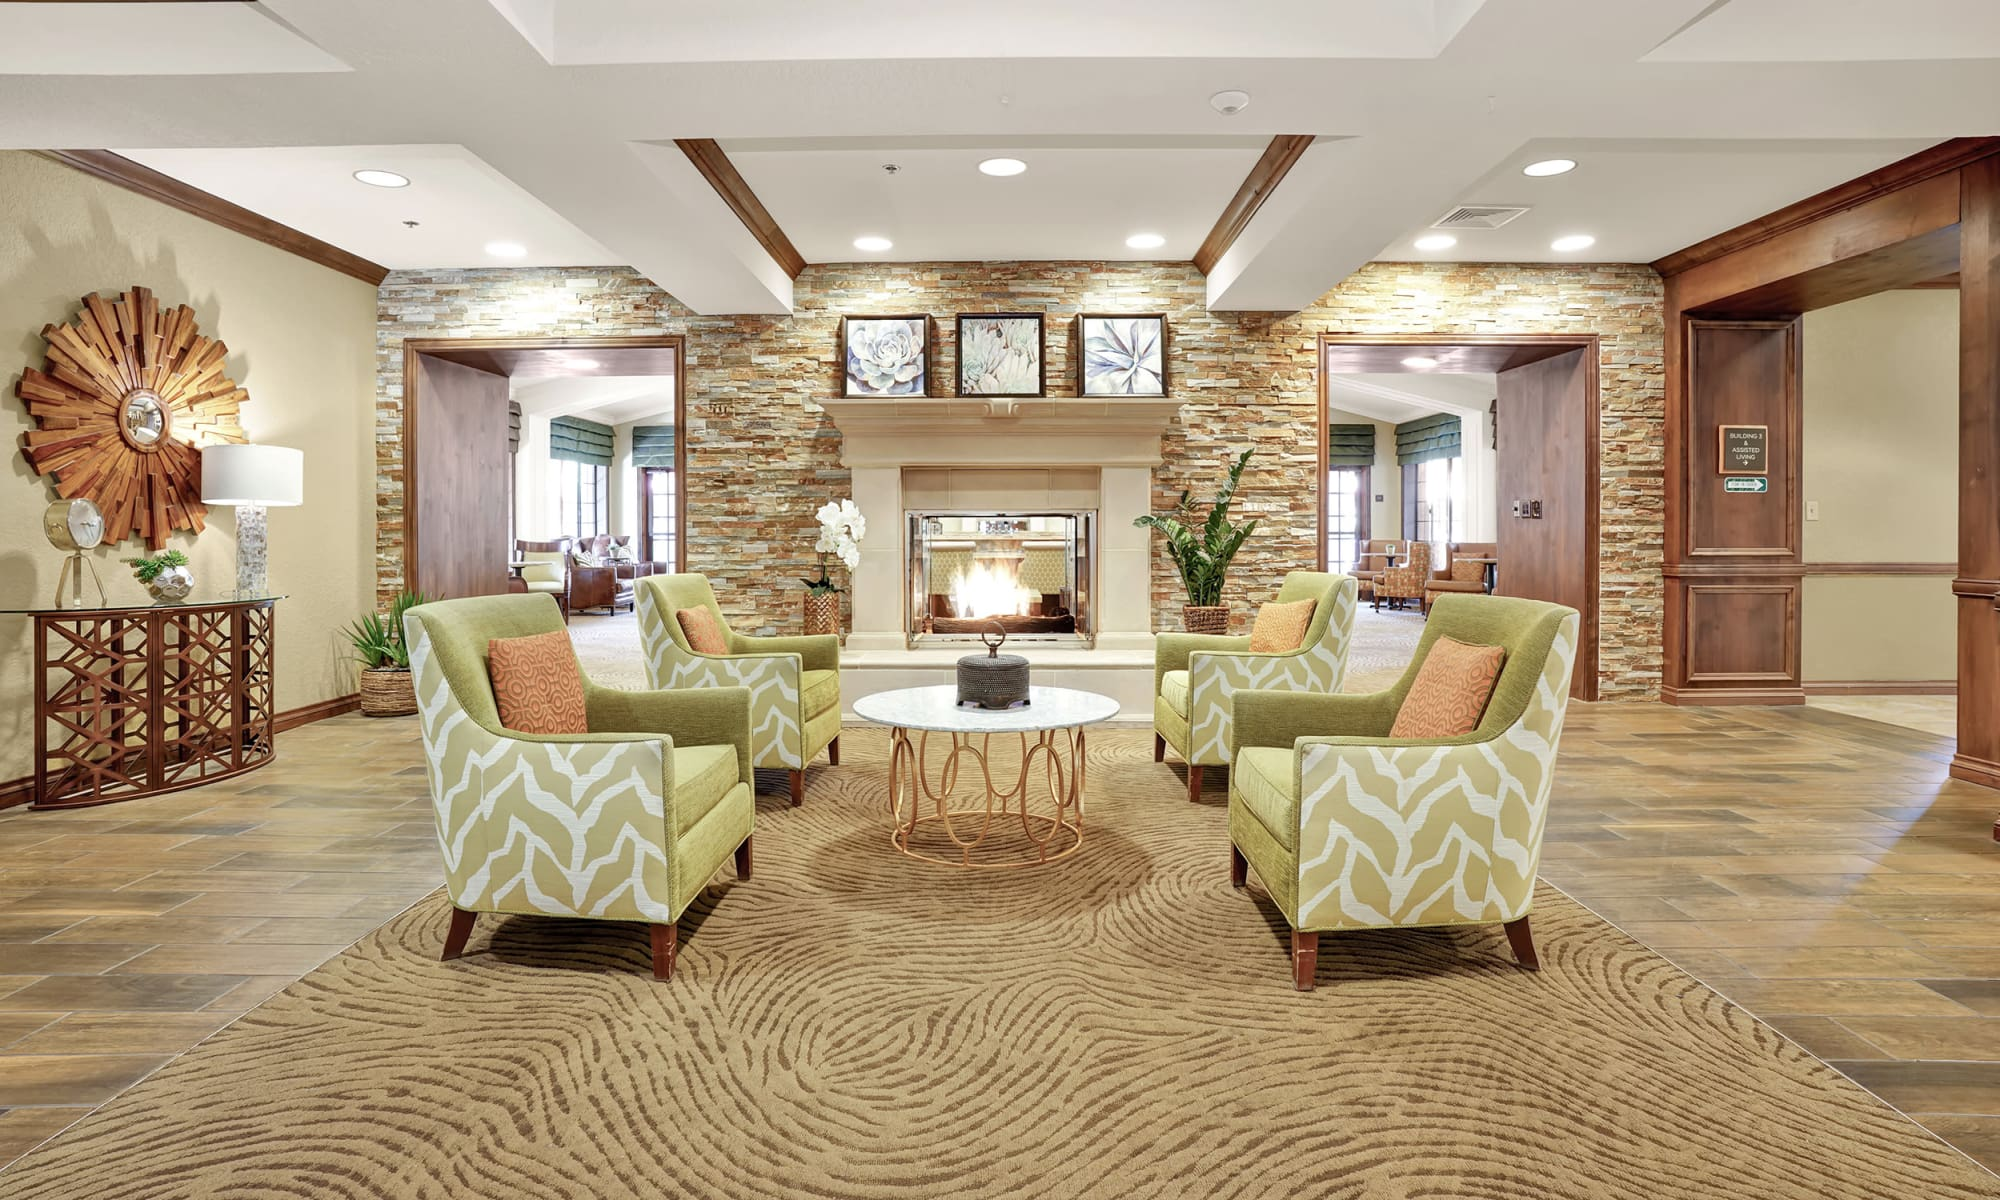 Lobby at The Country Club of La Cholla in Tucson, Arizona